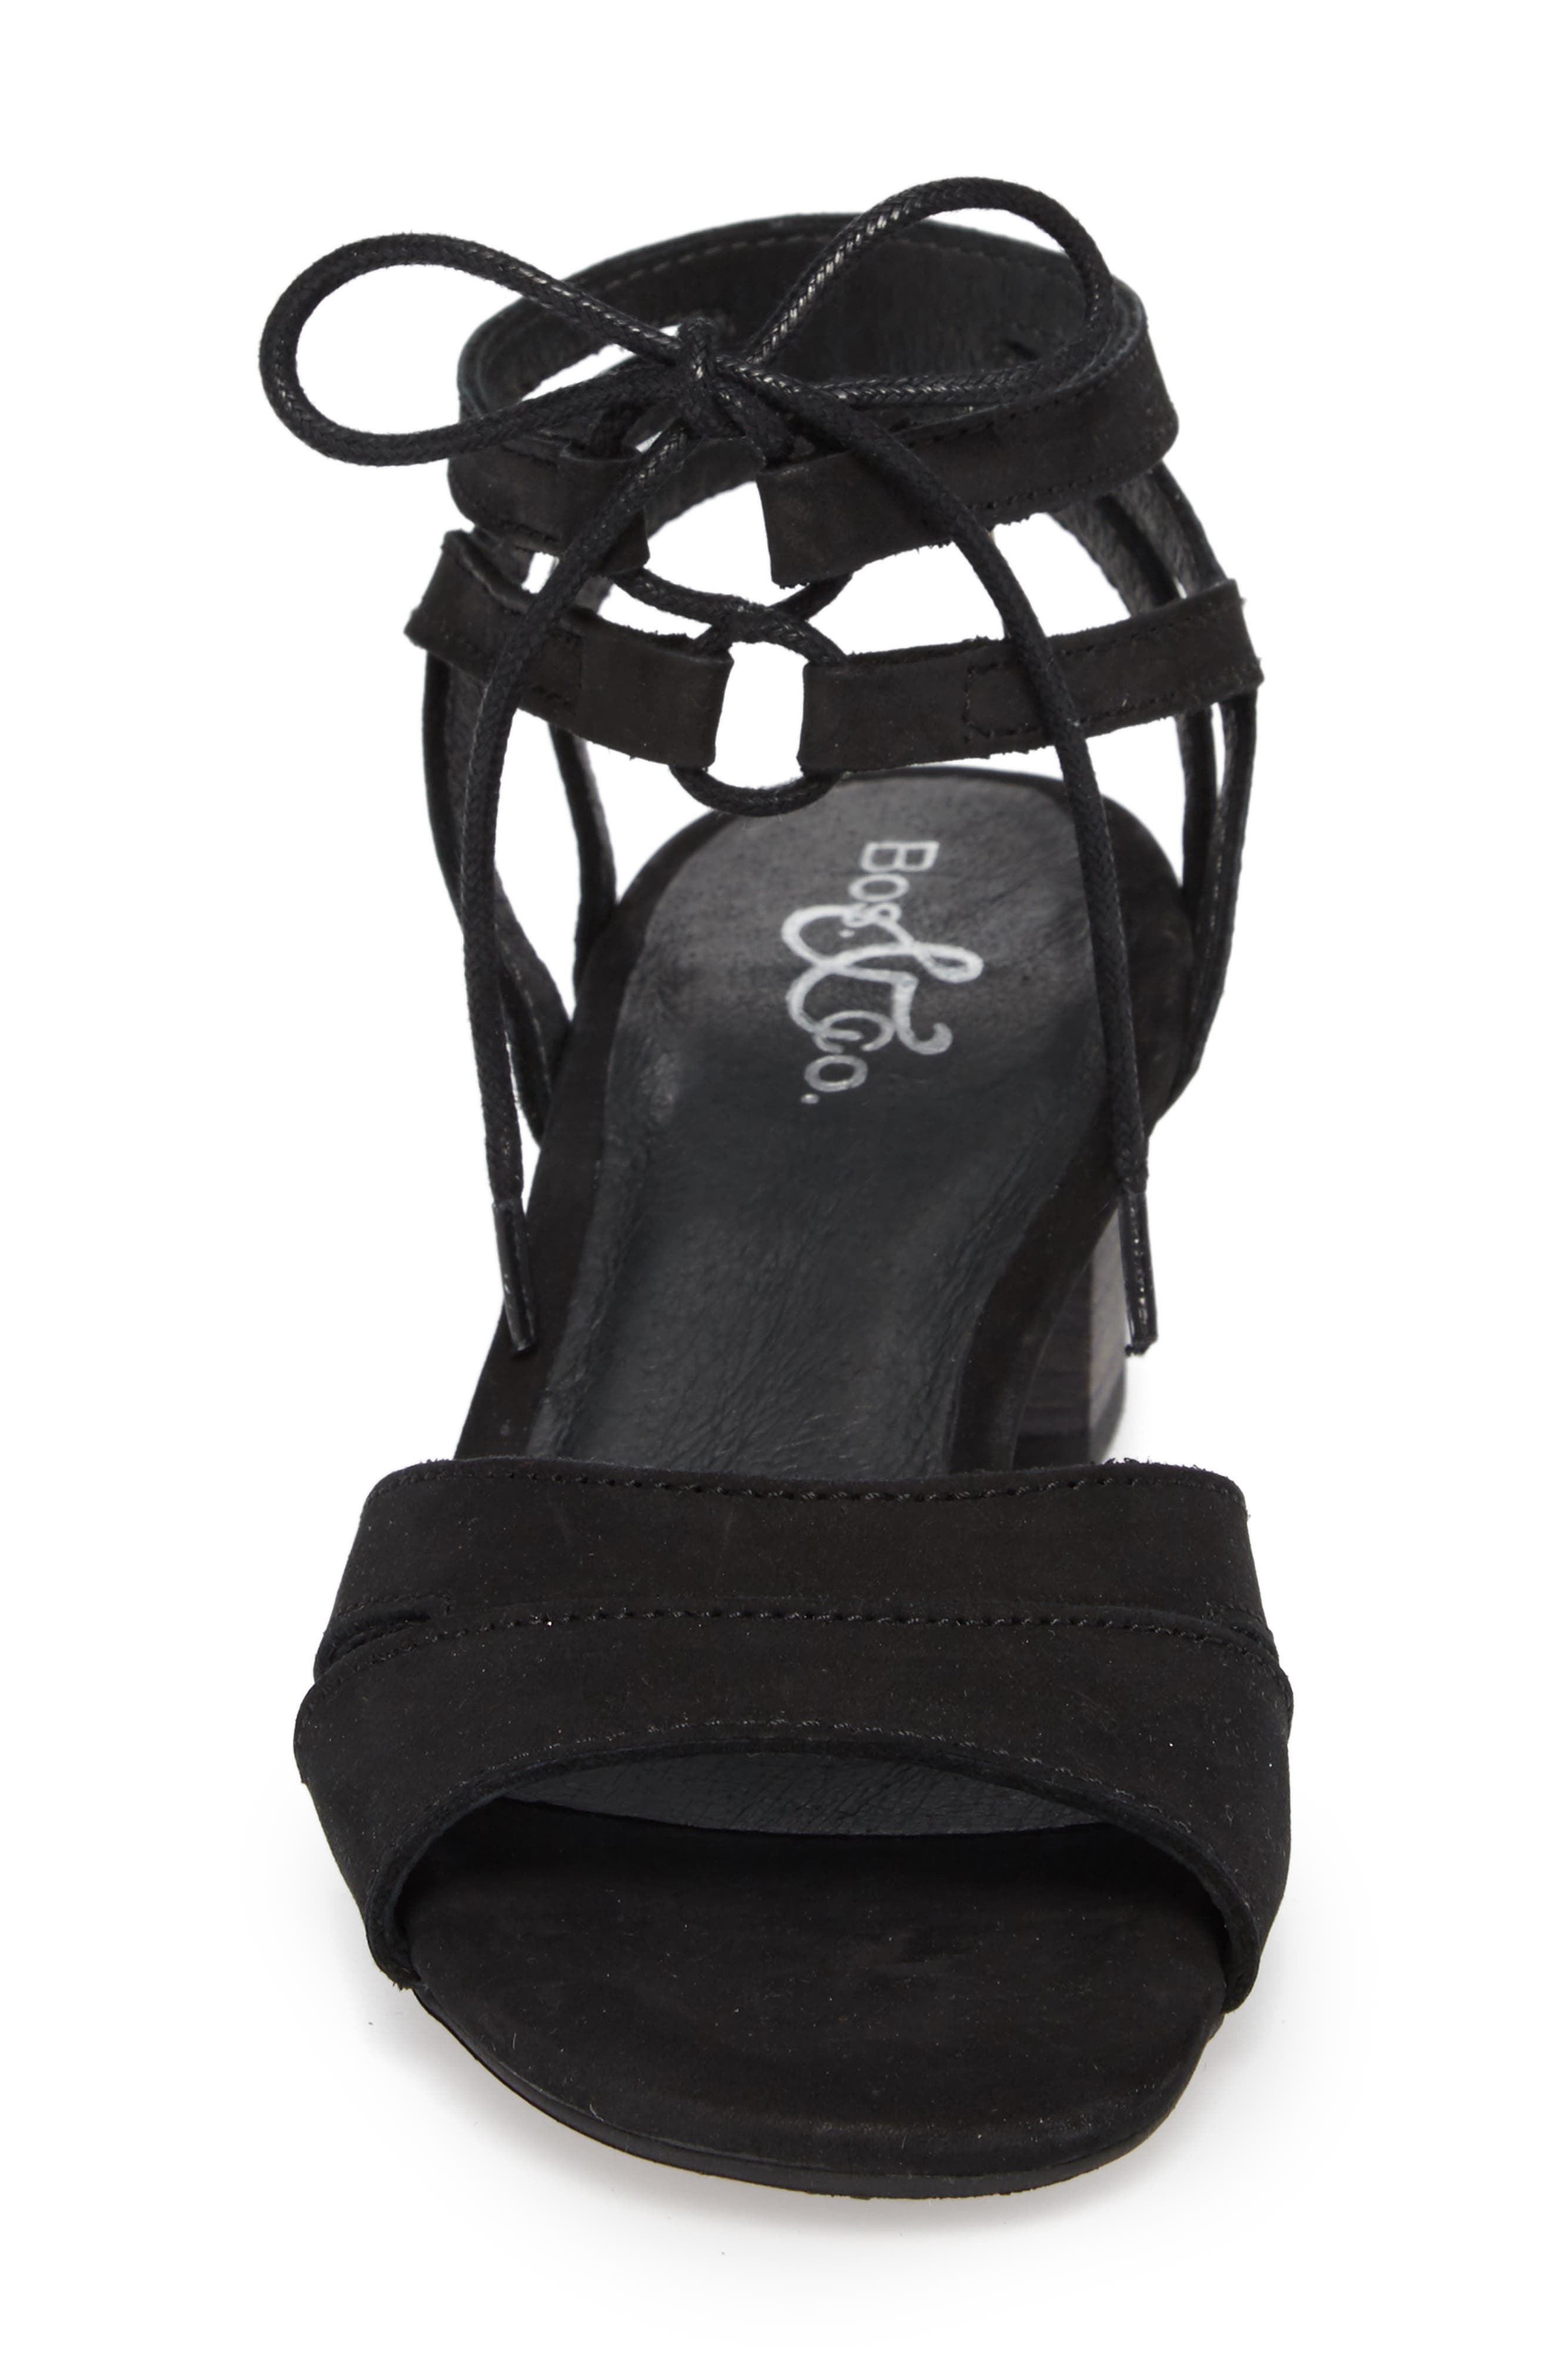 Zorita Sandal,                             Alternate thumbnail 4, color,                             BLACK NUBUCK LEATHER